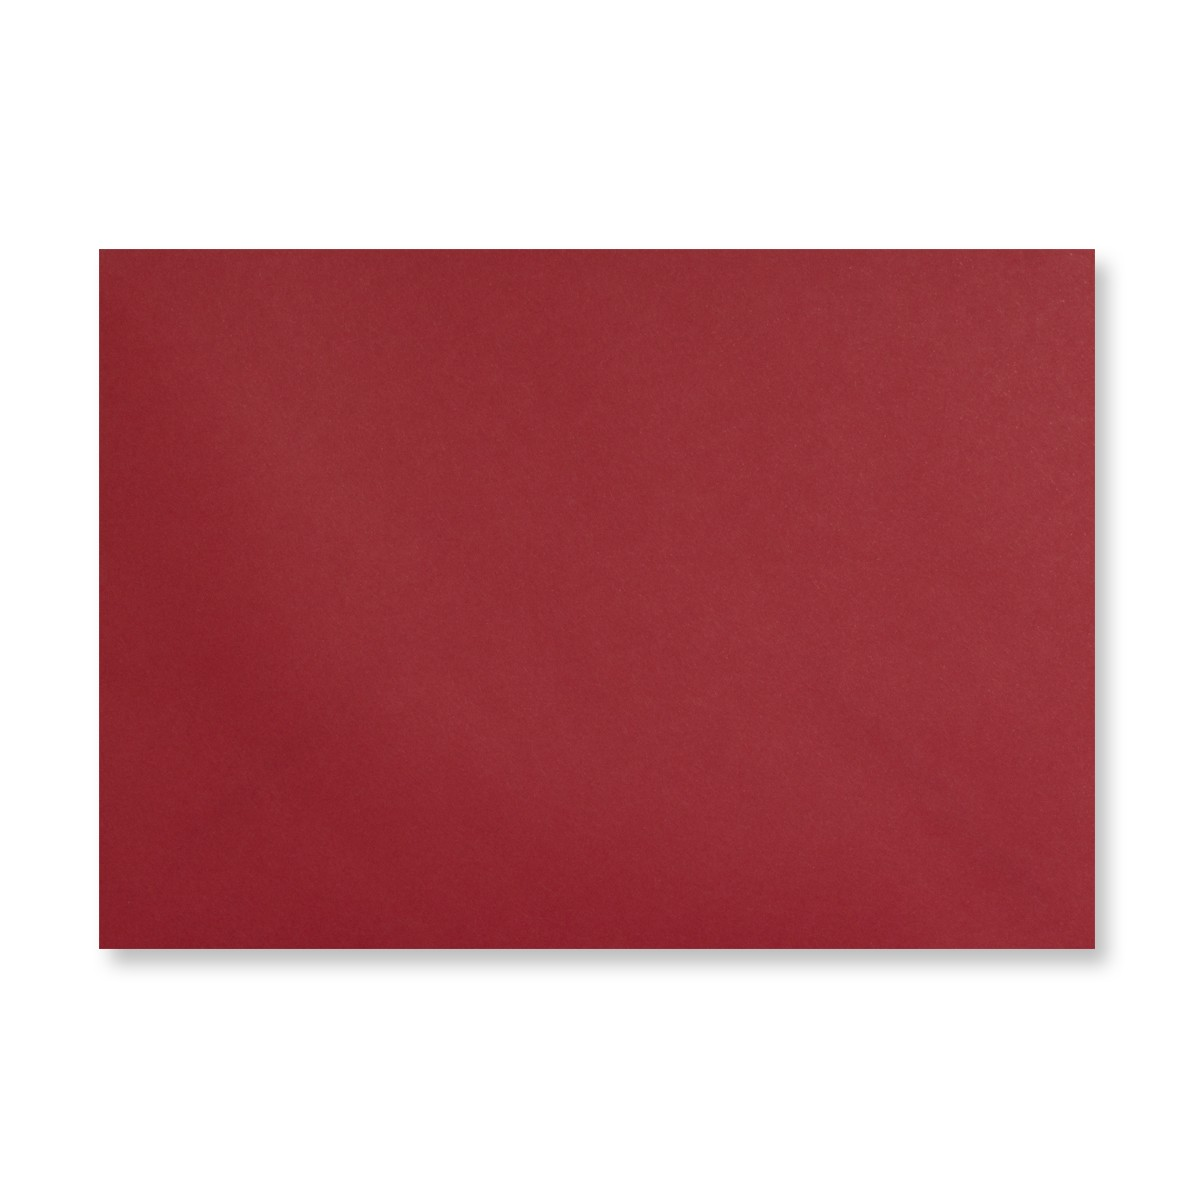 DARK RED 152 x 216mm ENVELOPES 120GSM